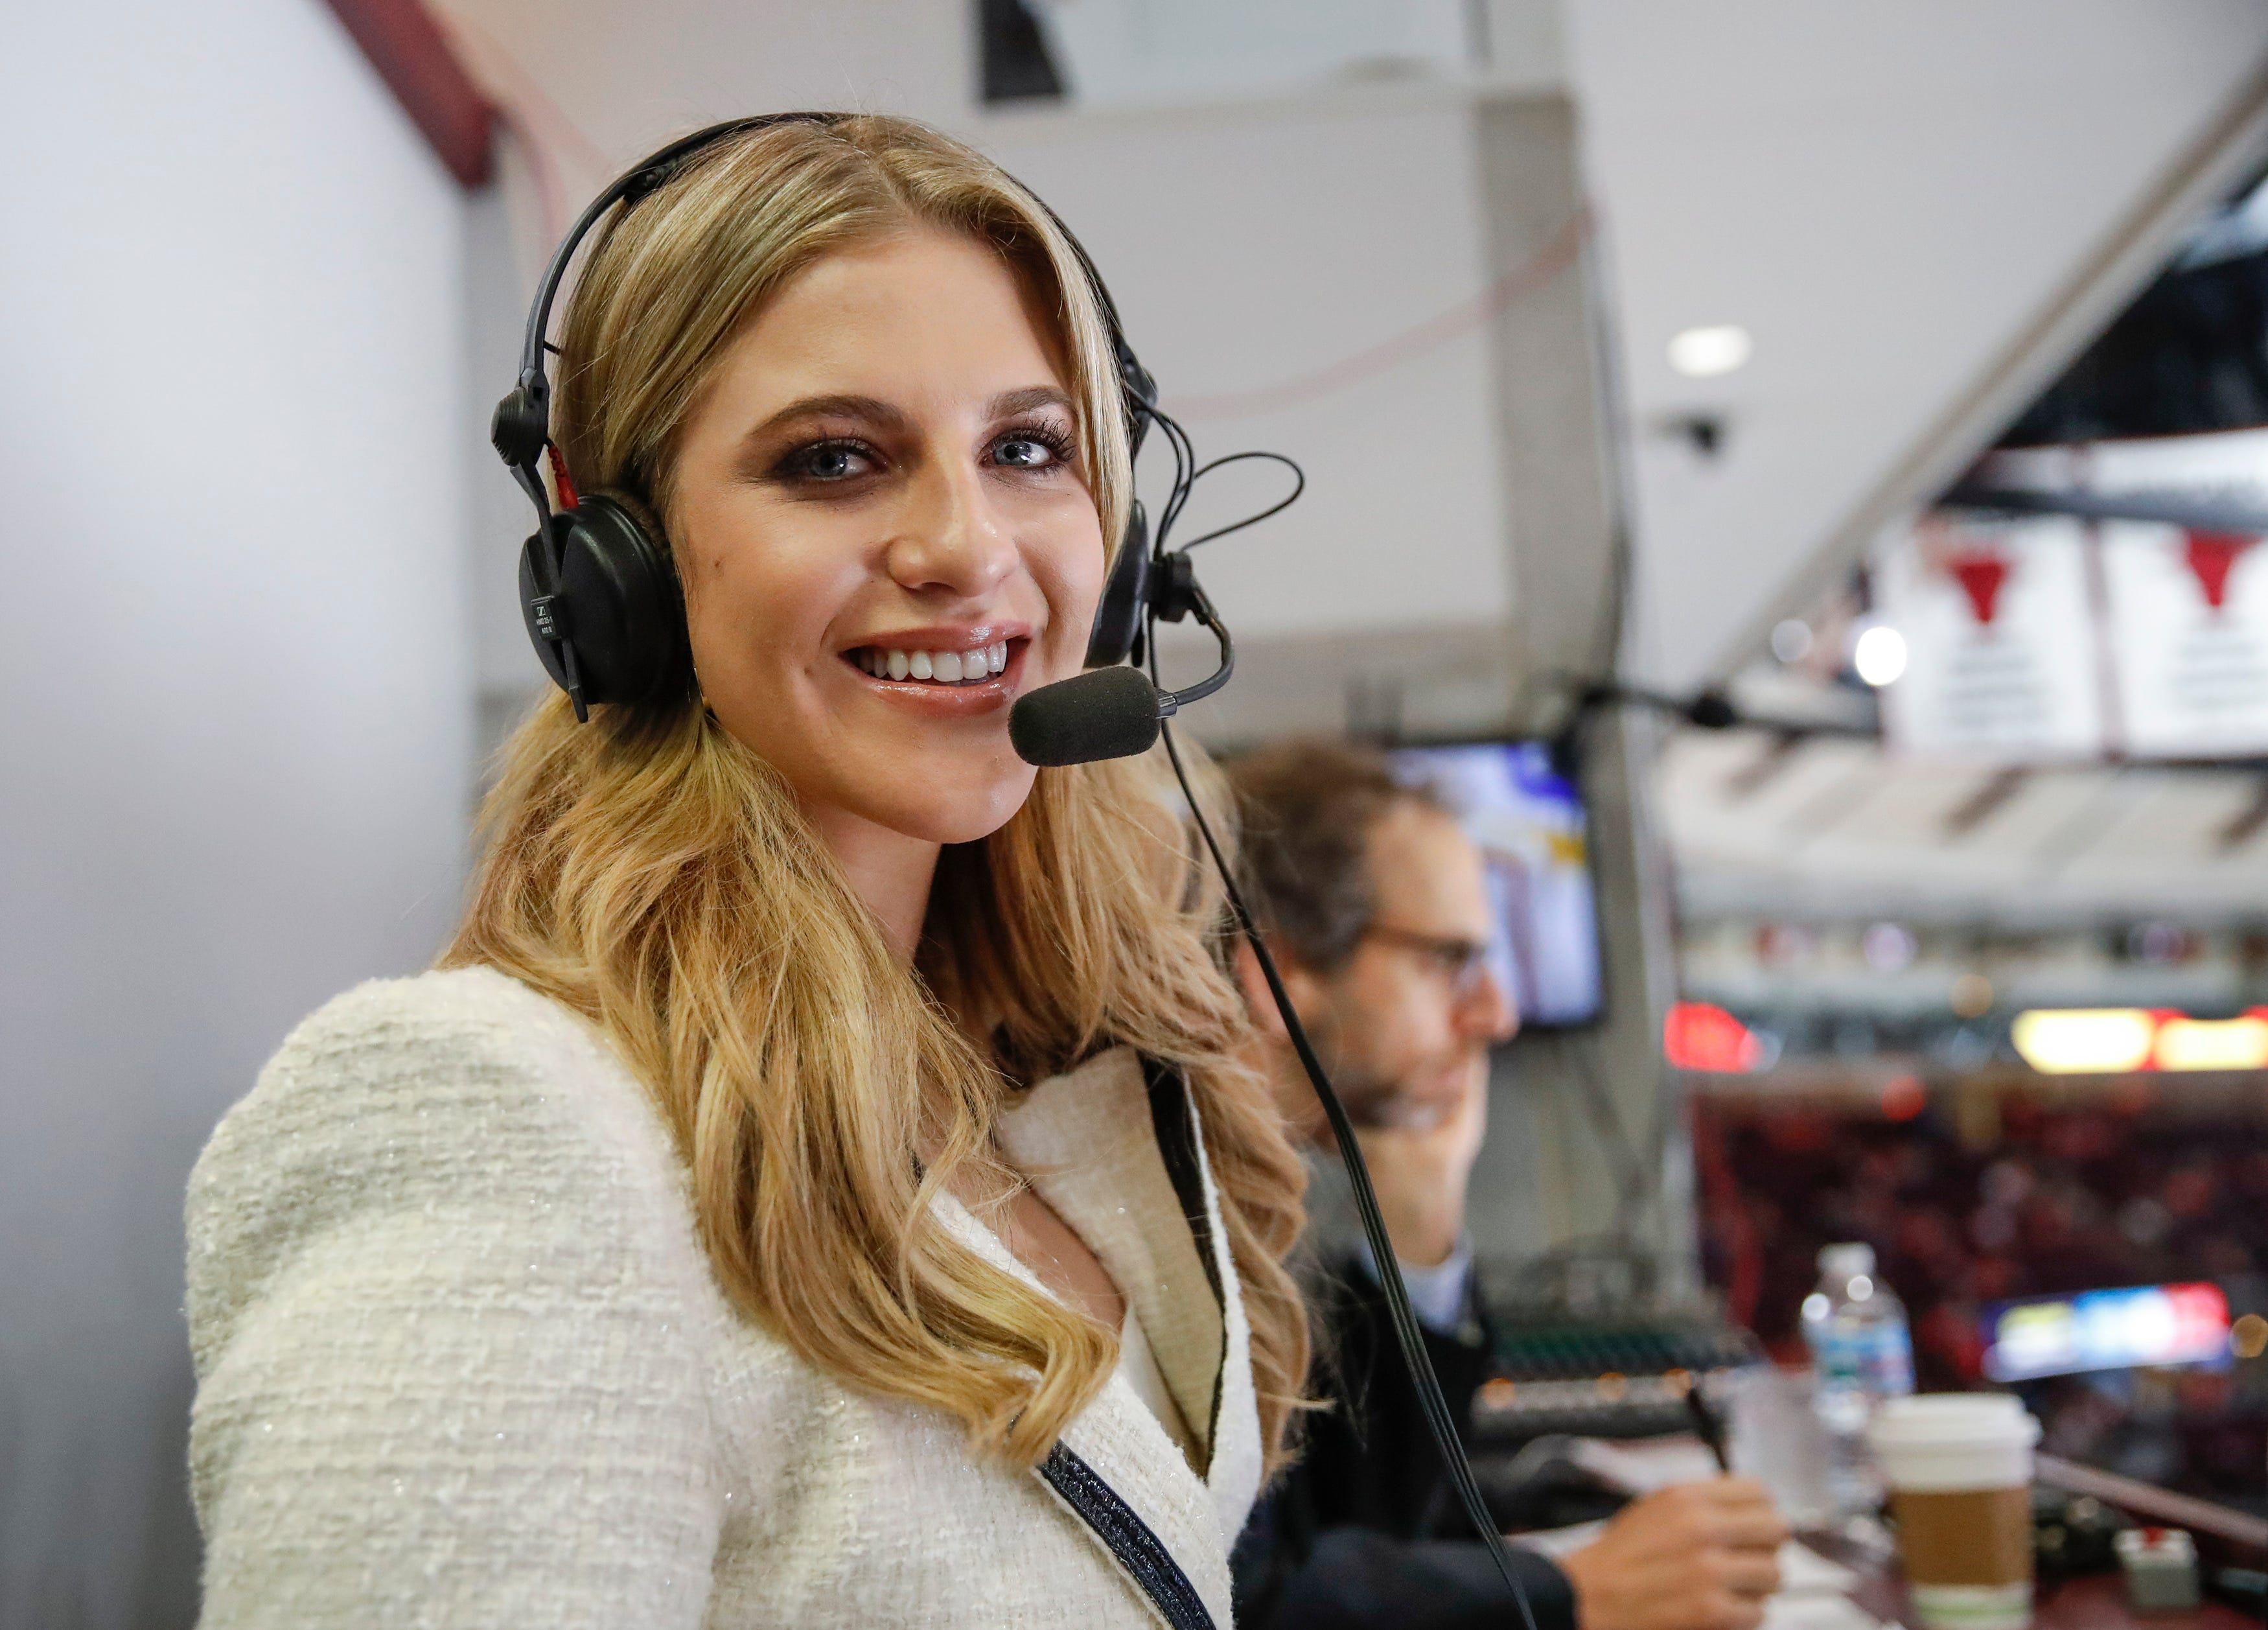 'Still a long way to go,' but women are gaining ground with new roles in the NHL